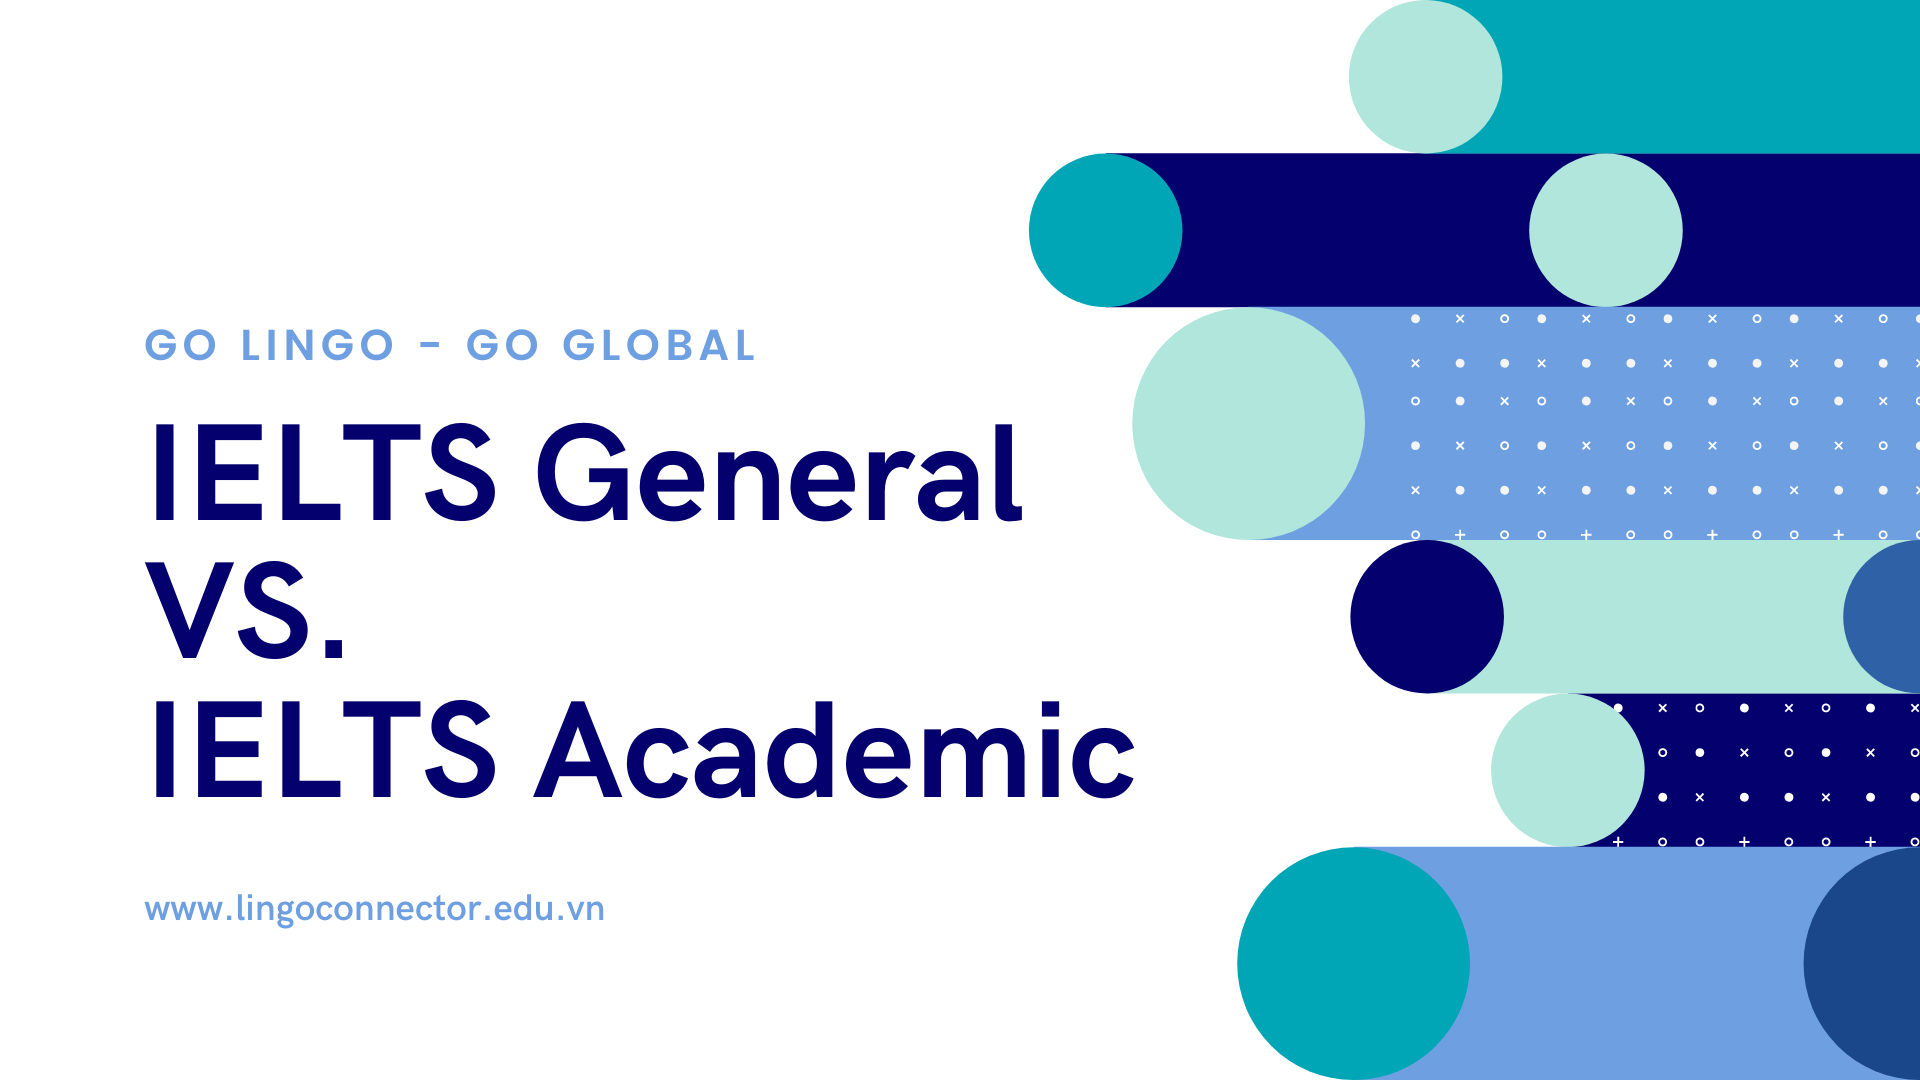 ielts geneeral va ielts academic